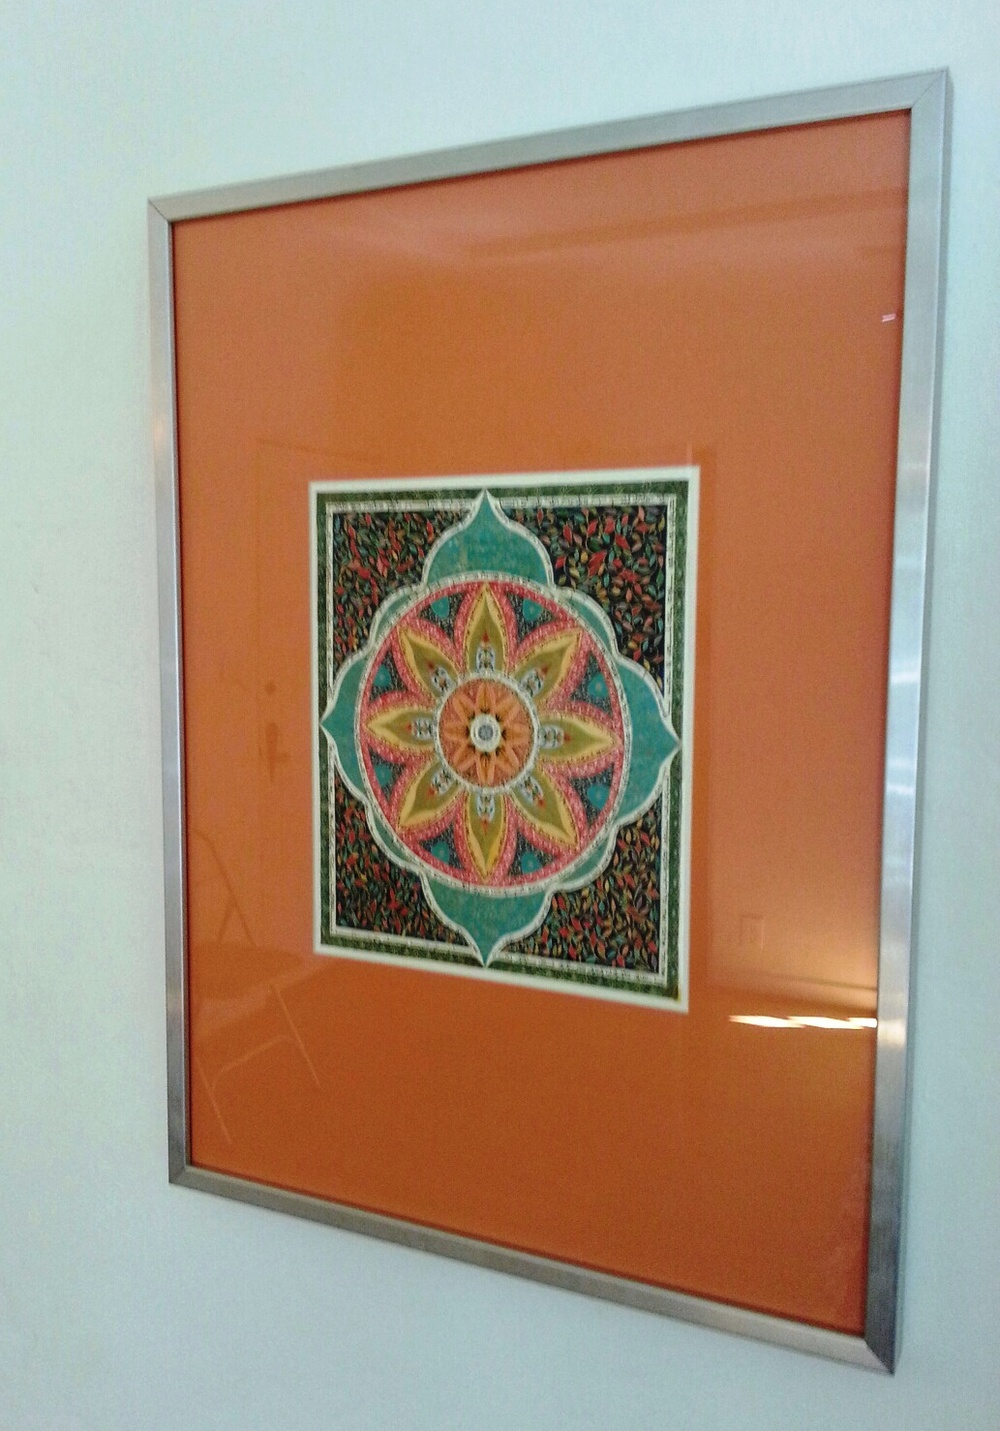 I stuck this print I found in Israel in a frame from IKEA.  I chose a tangerine colored wide mat so that the print would appear grander.  Size matters.